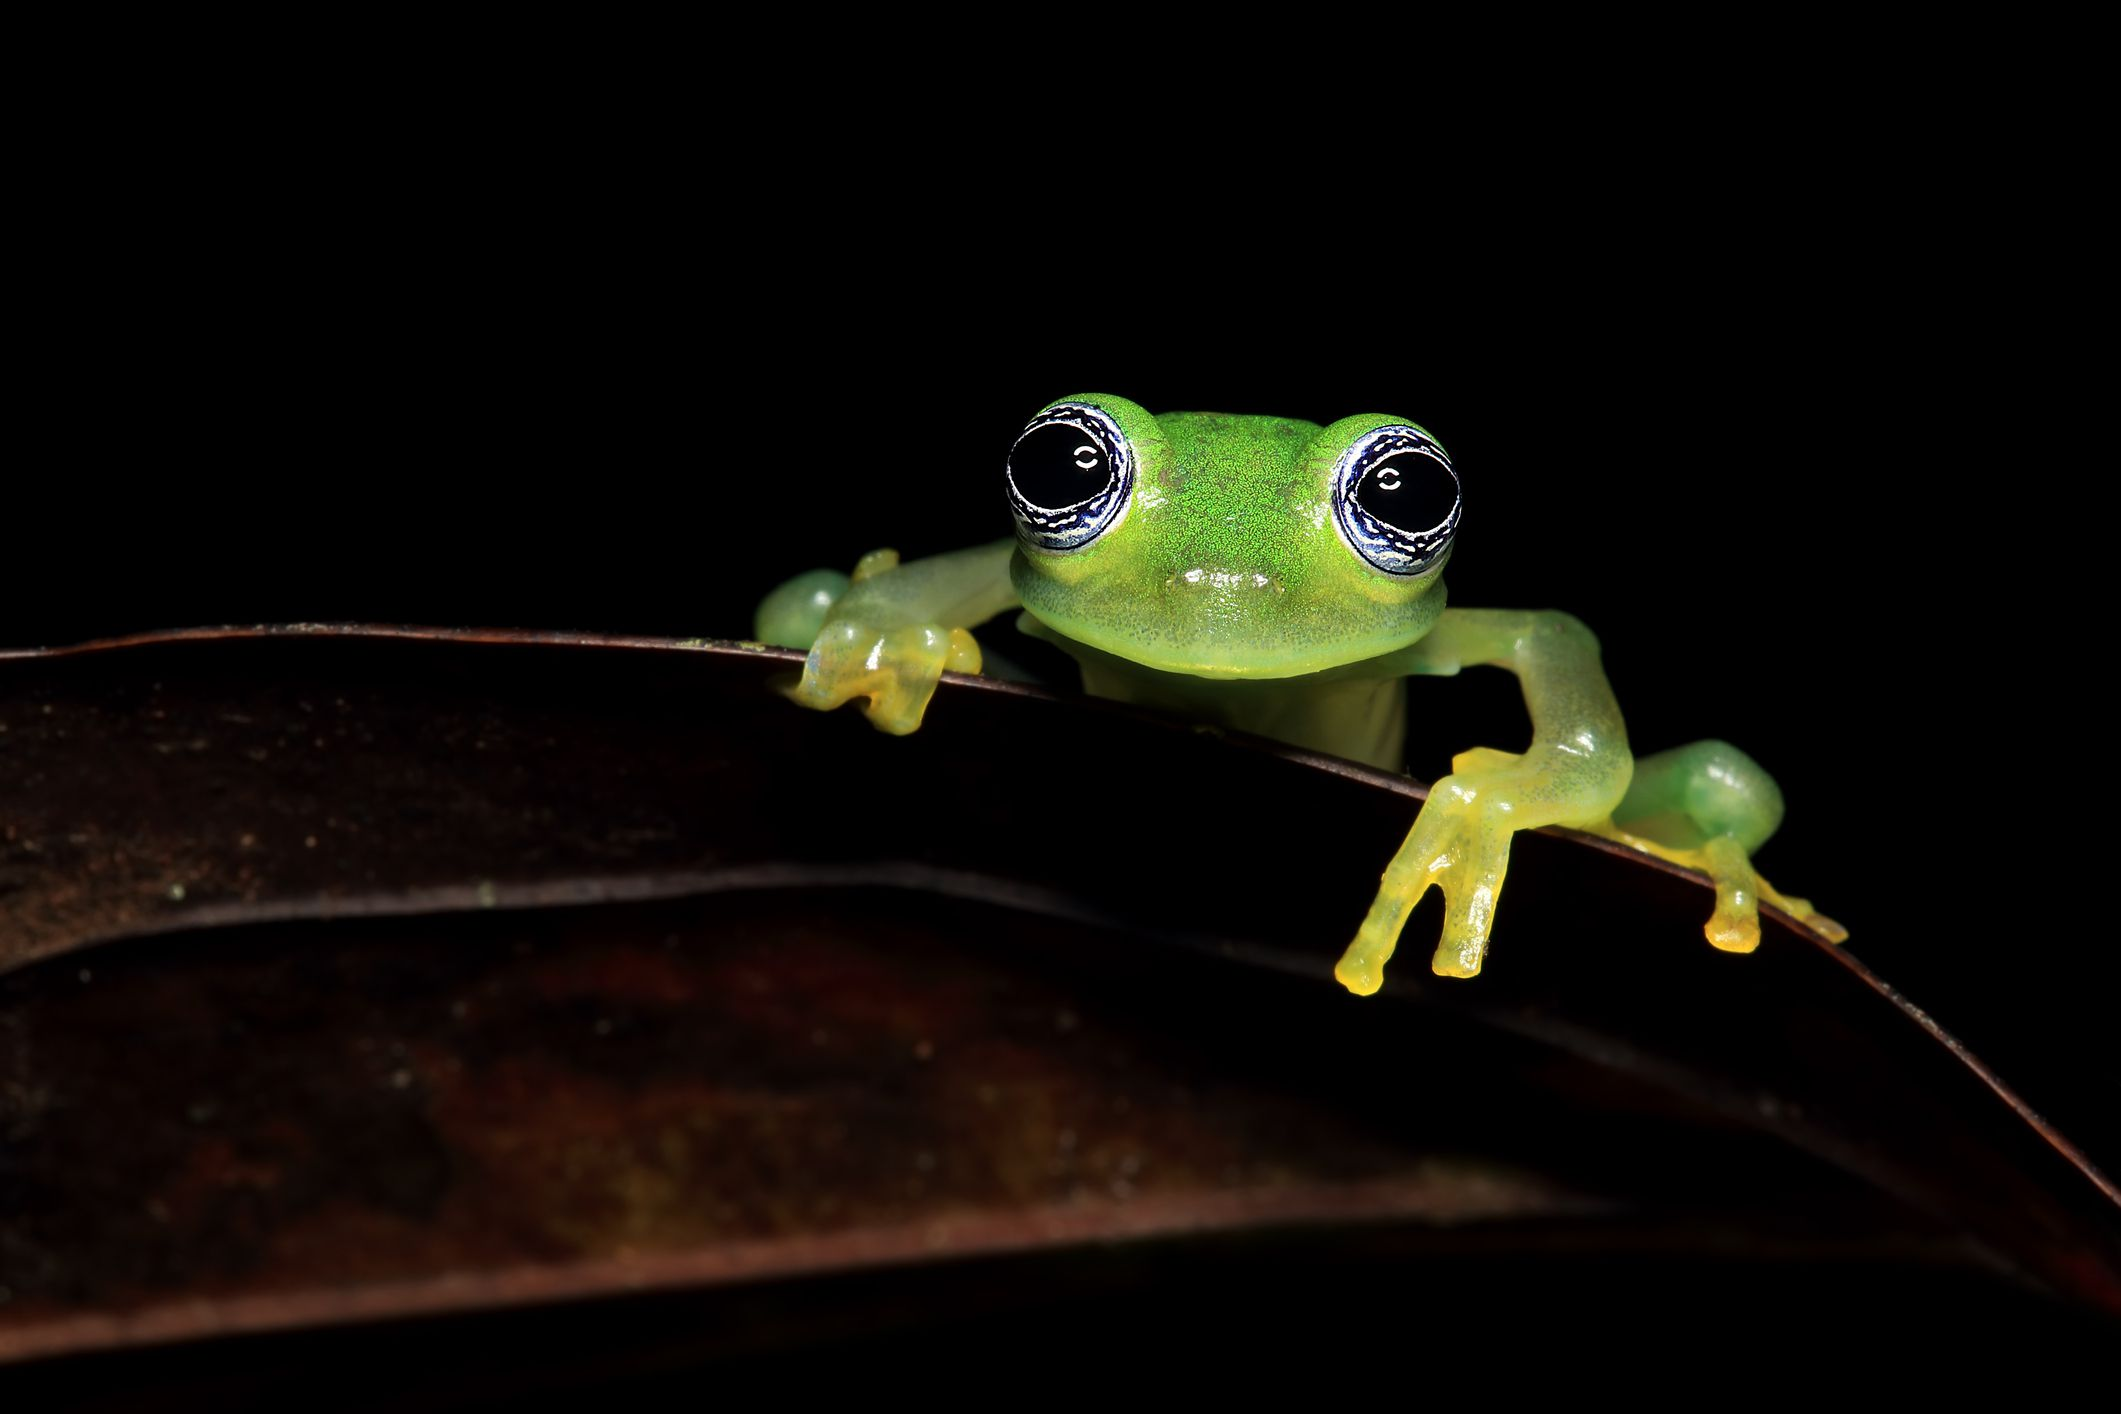 A glass frog peers over the edge of a leaf